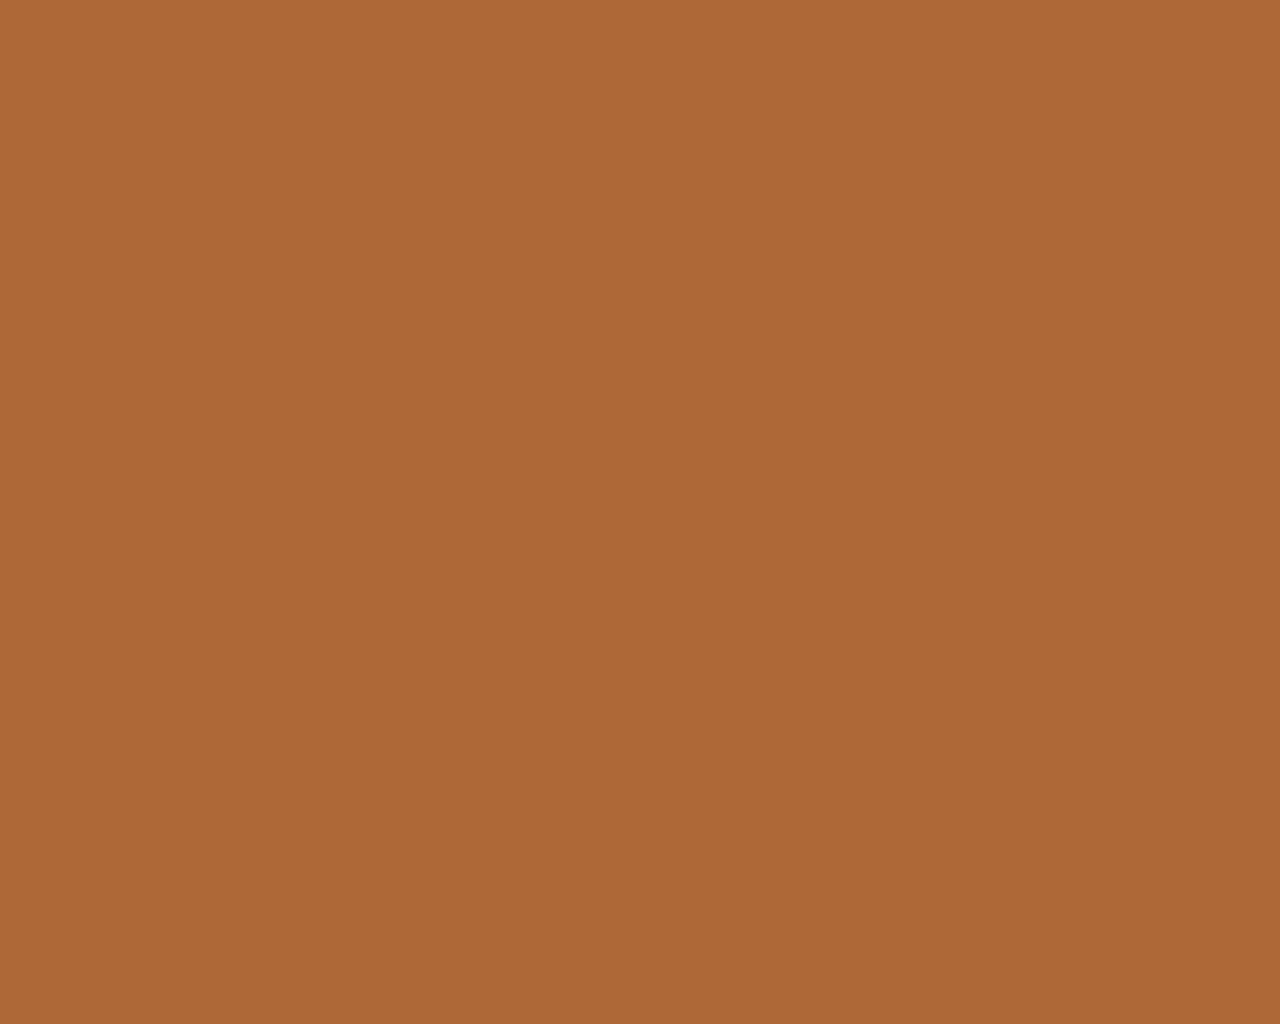 1280x1024 Windsor Tan Solid Color Background